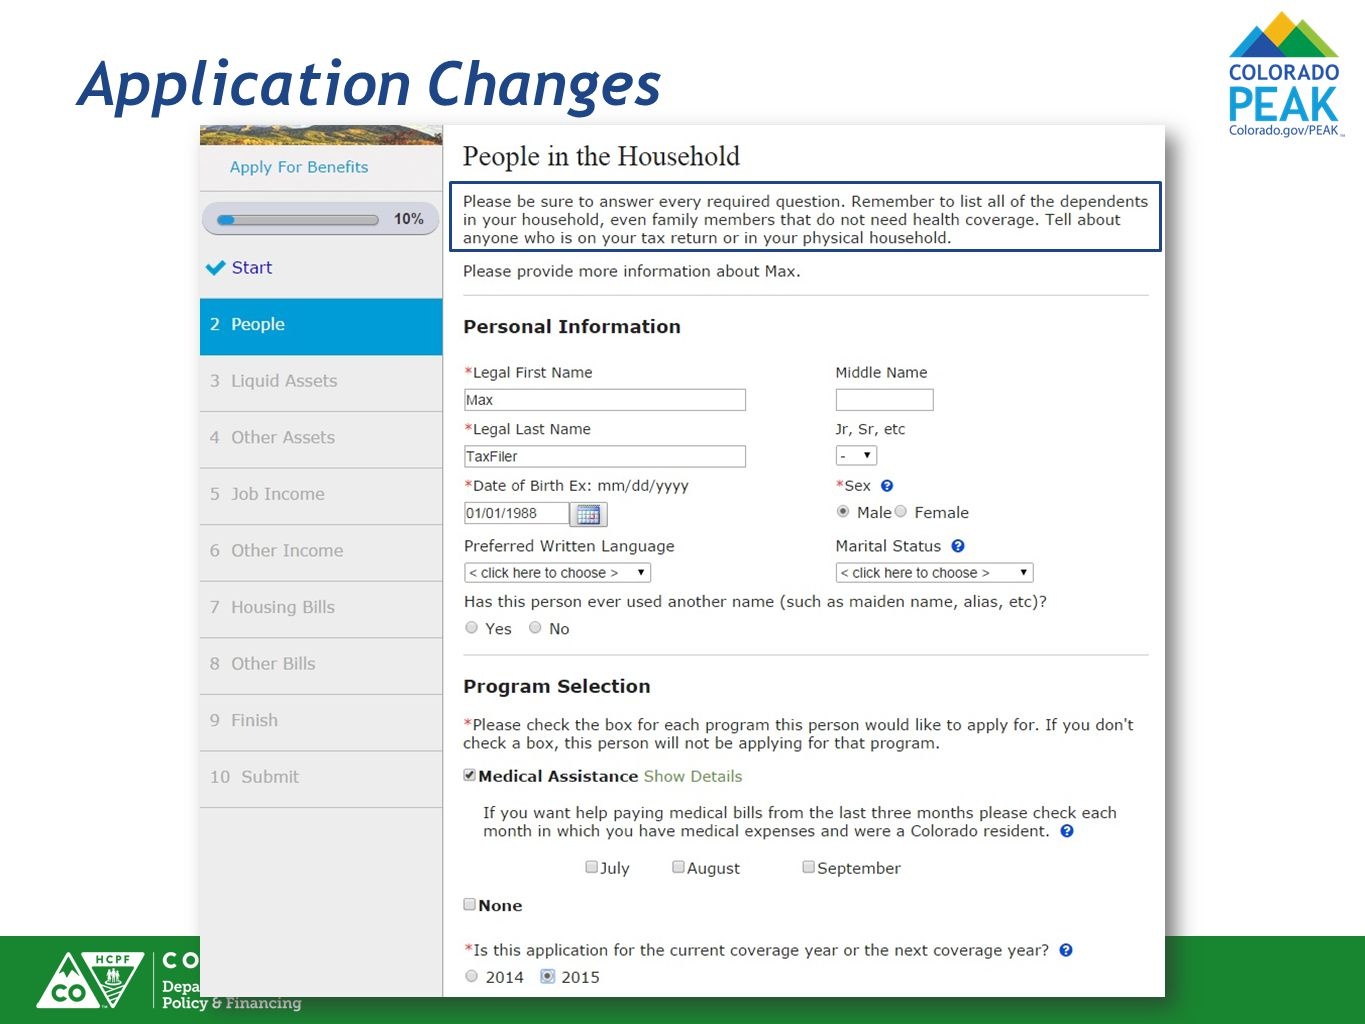 Application Changes Language about People in the Household has been revised.